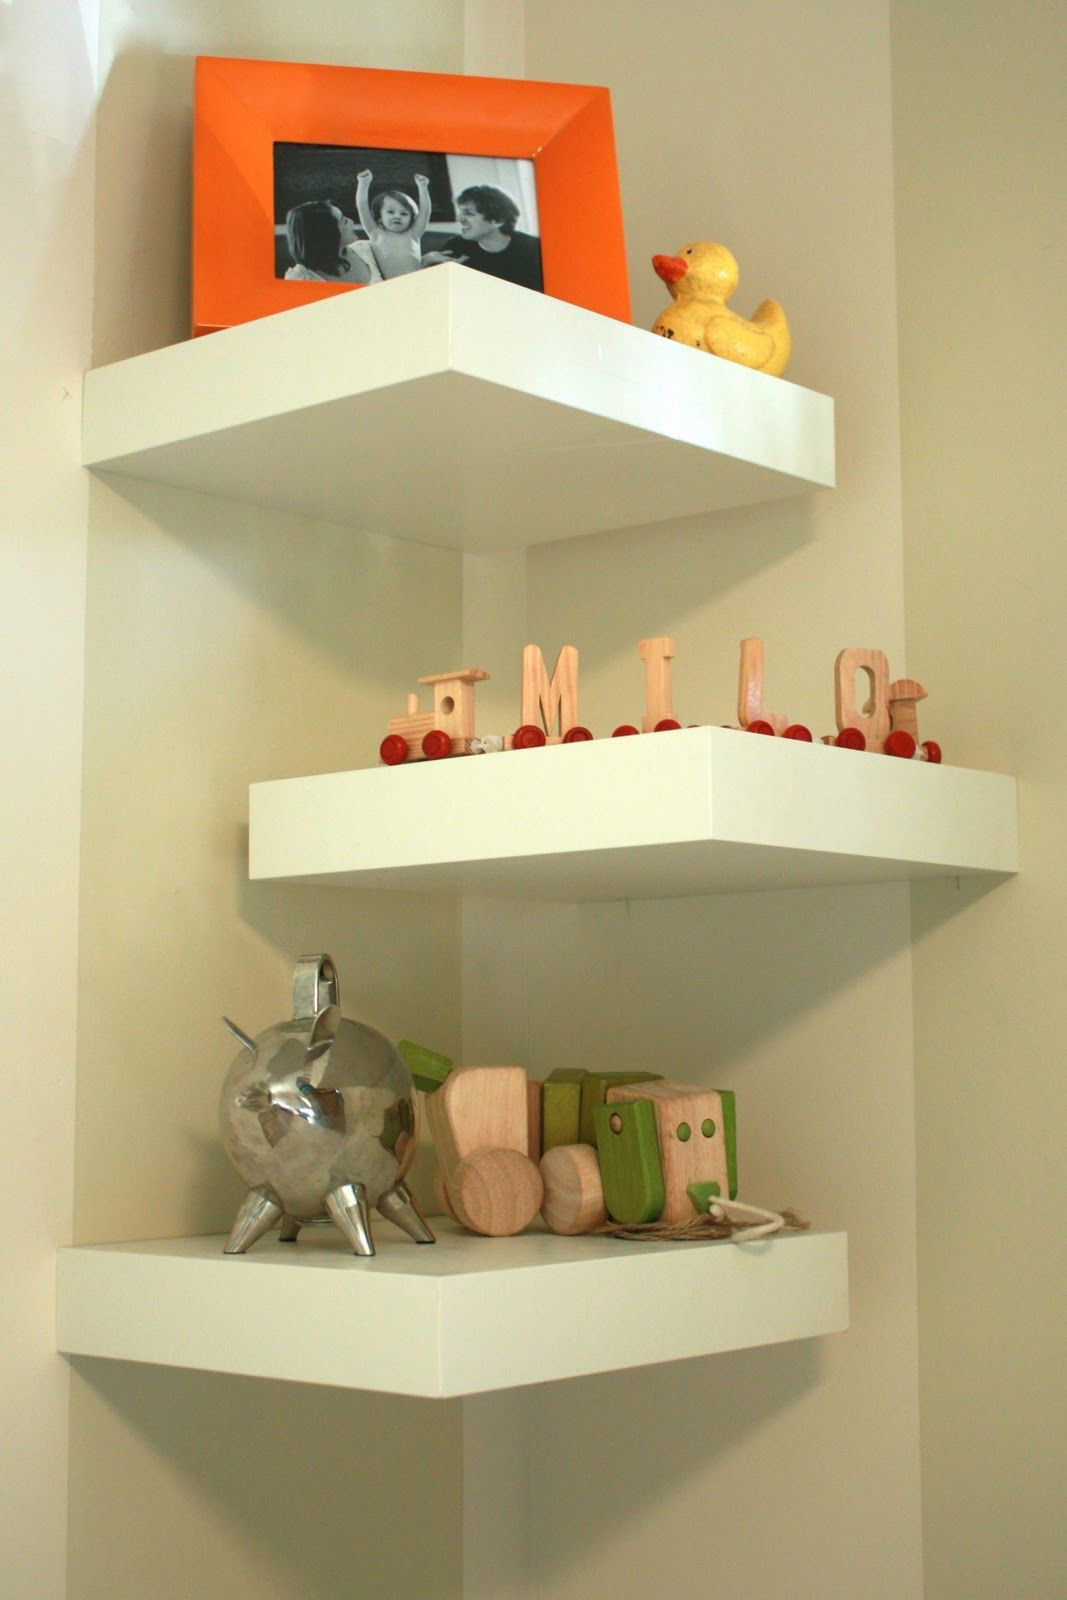 pin traci bedroom inspiration corner wall shelves diy small white floating shelf amazing design ideas even when you did figure out how earn the back edge would want get trimmed